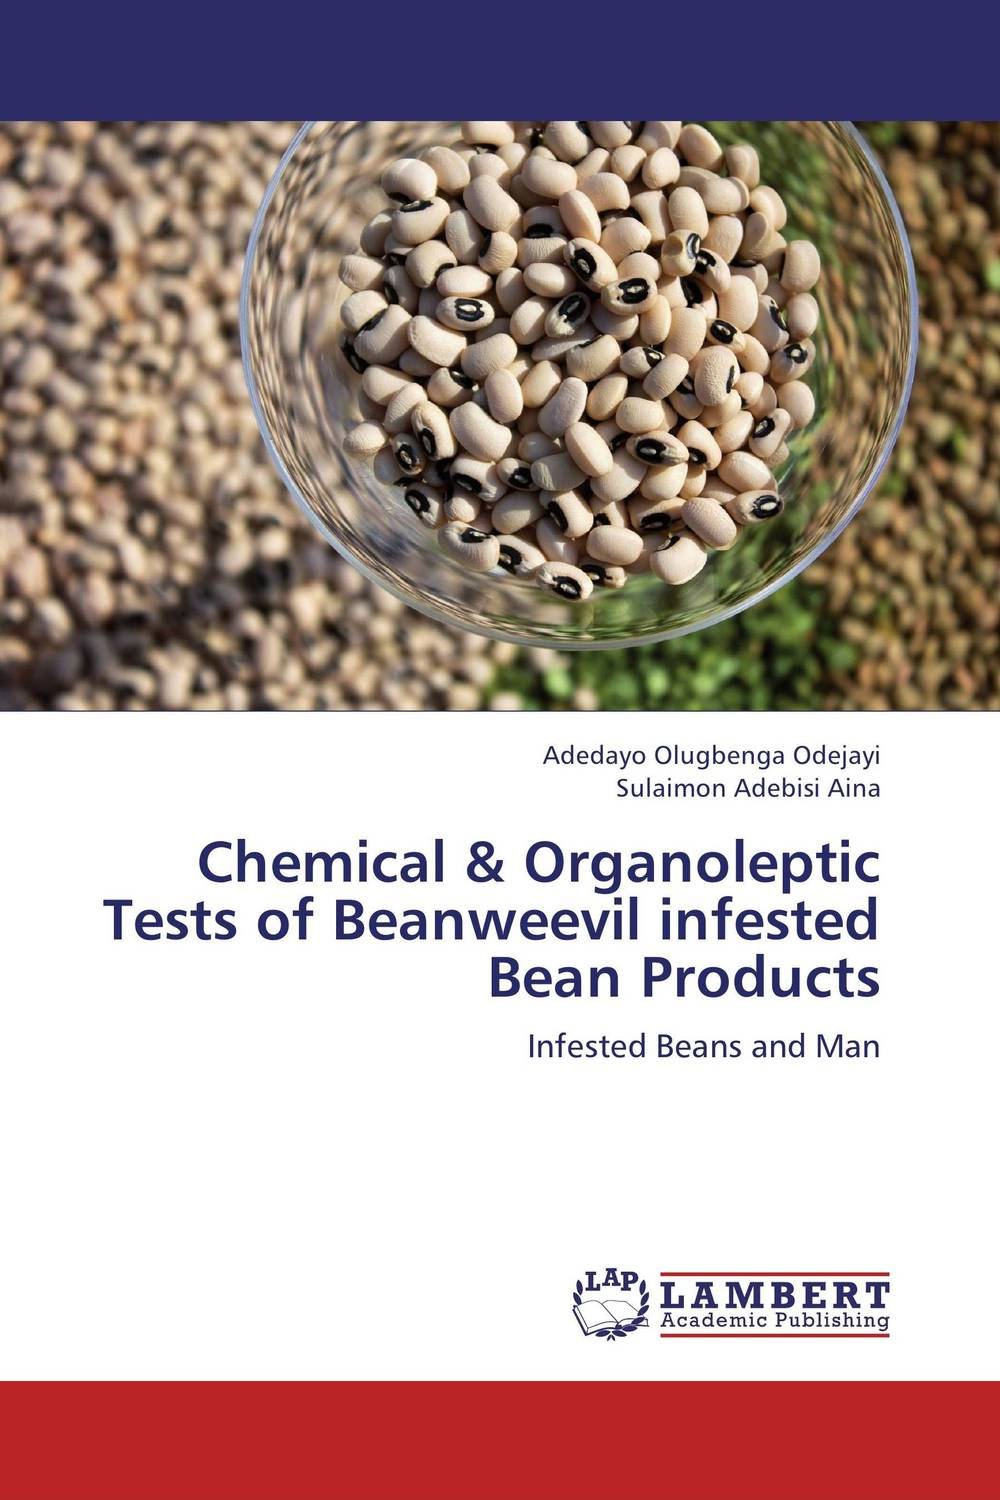 Chemical & Organoleptic Tests of Beanweevil infested Bean Products effect of fruits of opuntia ficus indica on hemolytic anemia